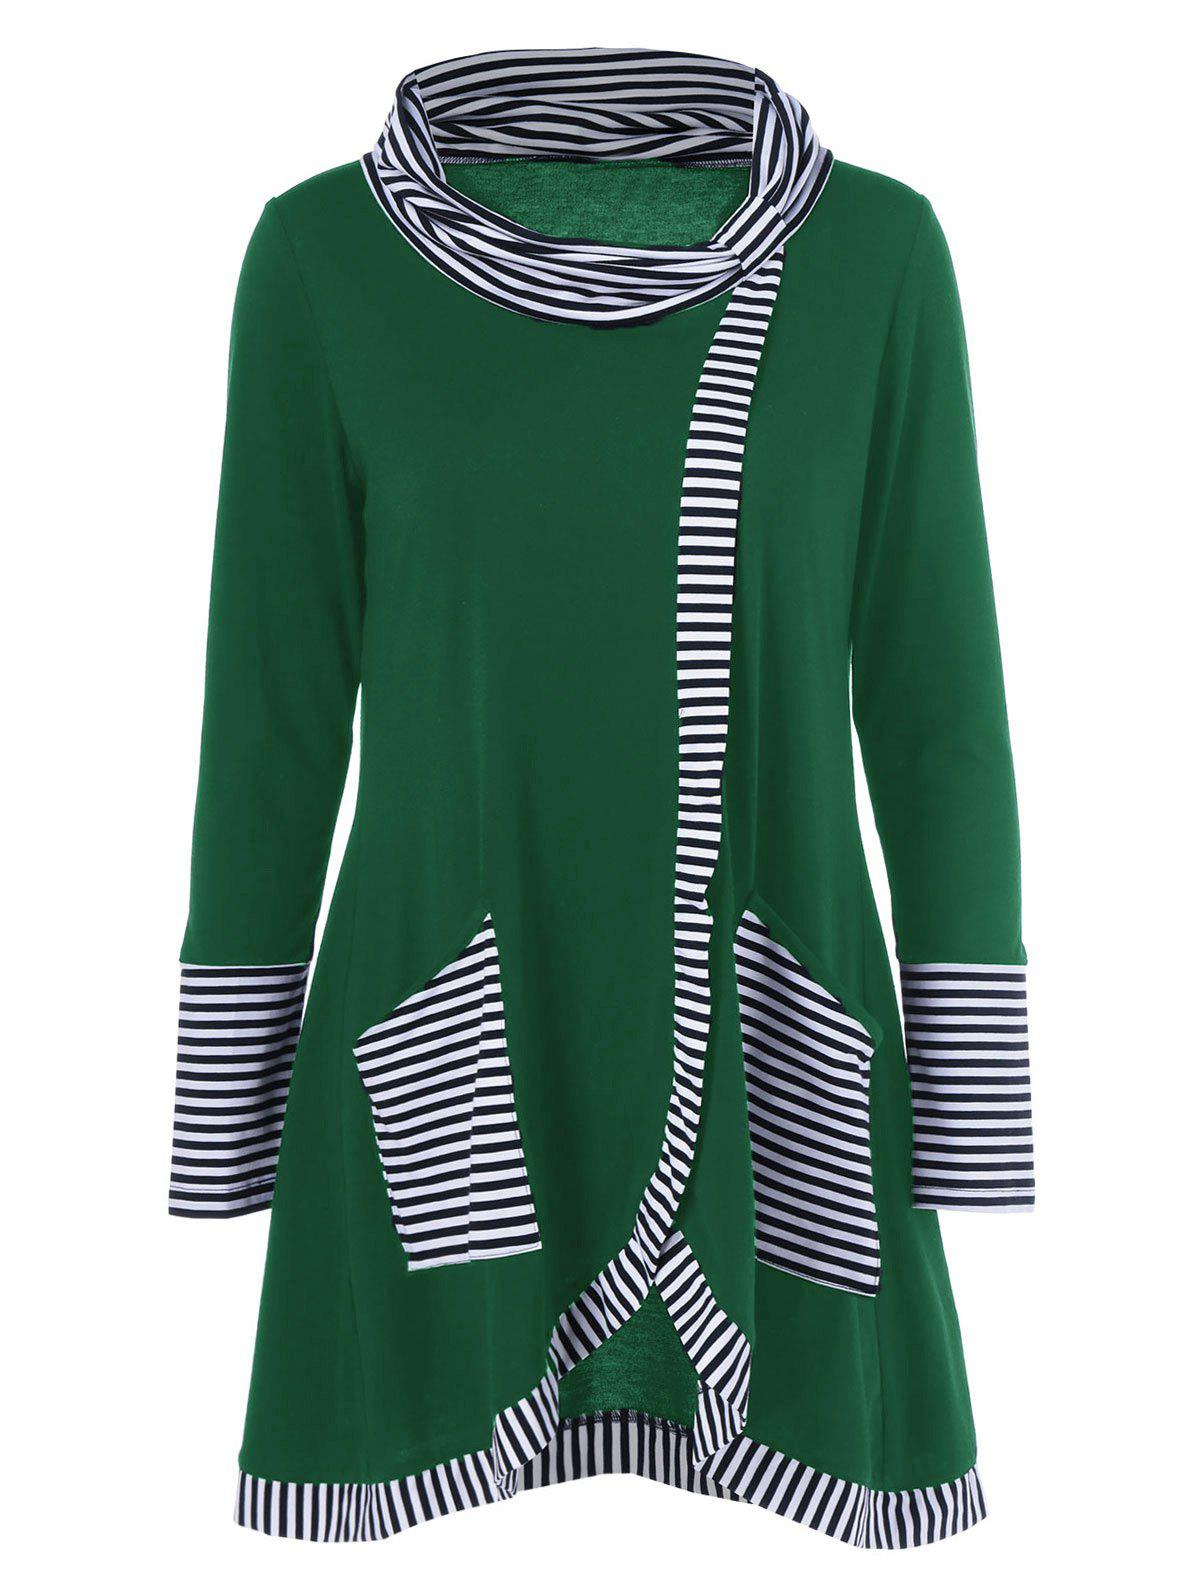 Pinstriped Patchwork Pockets Design TeeWOMEN<br><br>Size: XL; Color: DEEP GREEN; Material: Polyester; Sleeve Length: Full; Collar: Cowl Neck; Style: Casual; Pattern Type: Striped; Season: Fall,Spring; Weight: 0.380kg; Package Contents: 1 x Tee;